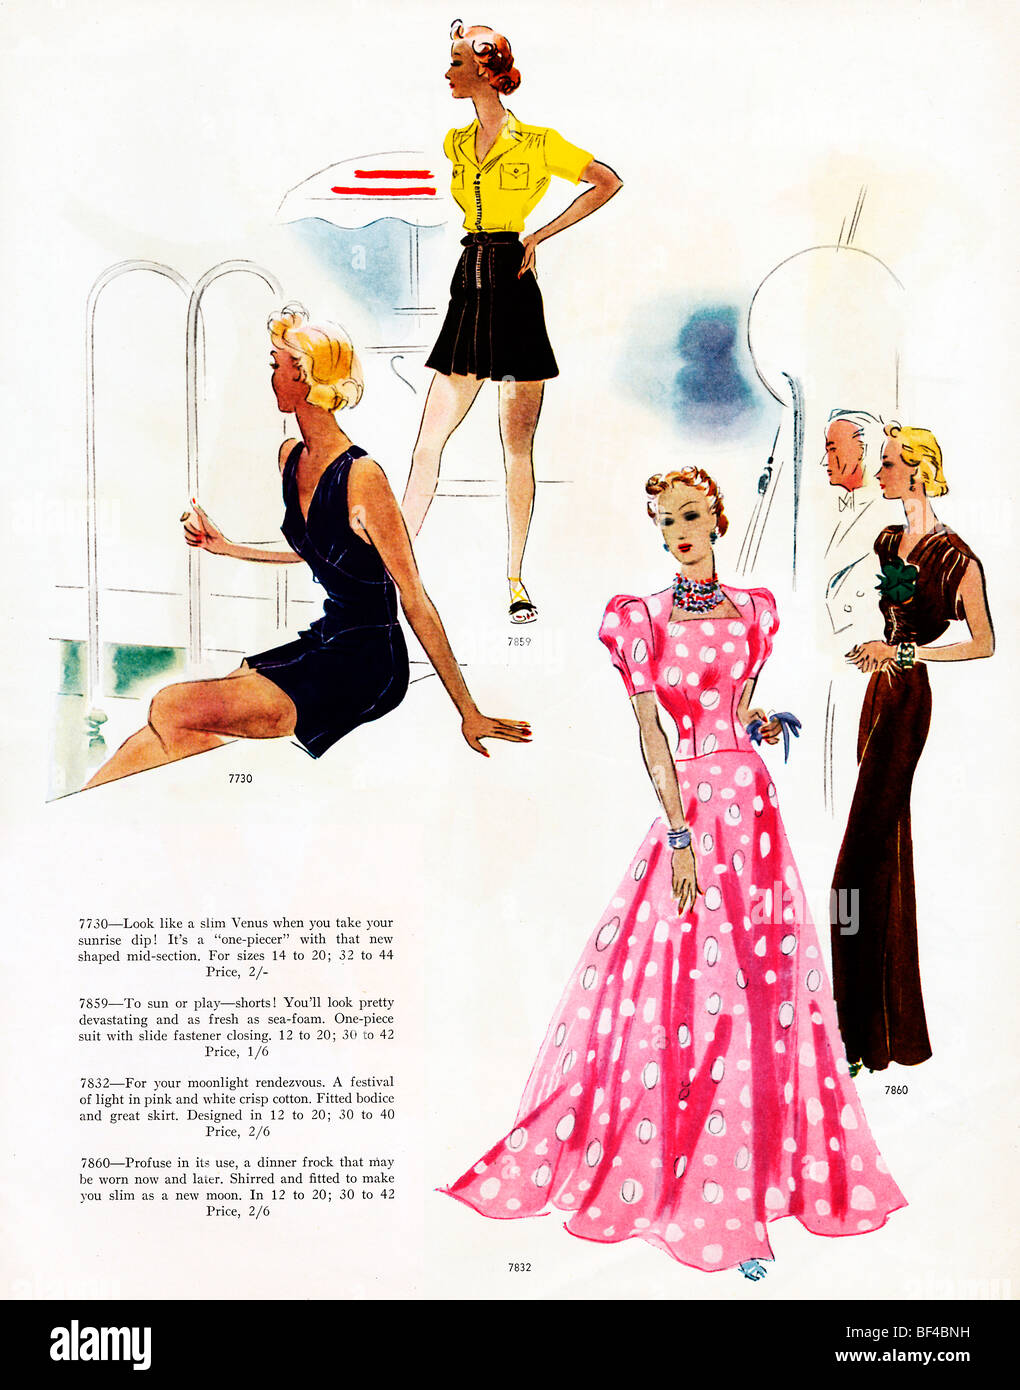 Resort Wear, 1930s fashion magazine illustration of patterns for poolside, lounging and evening wear on holiday Stock Photo